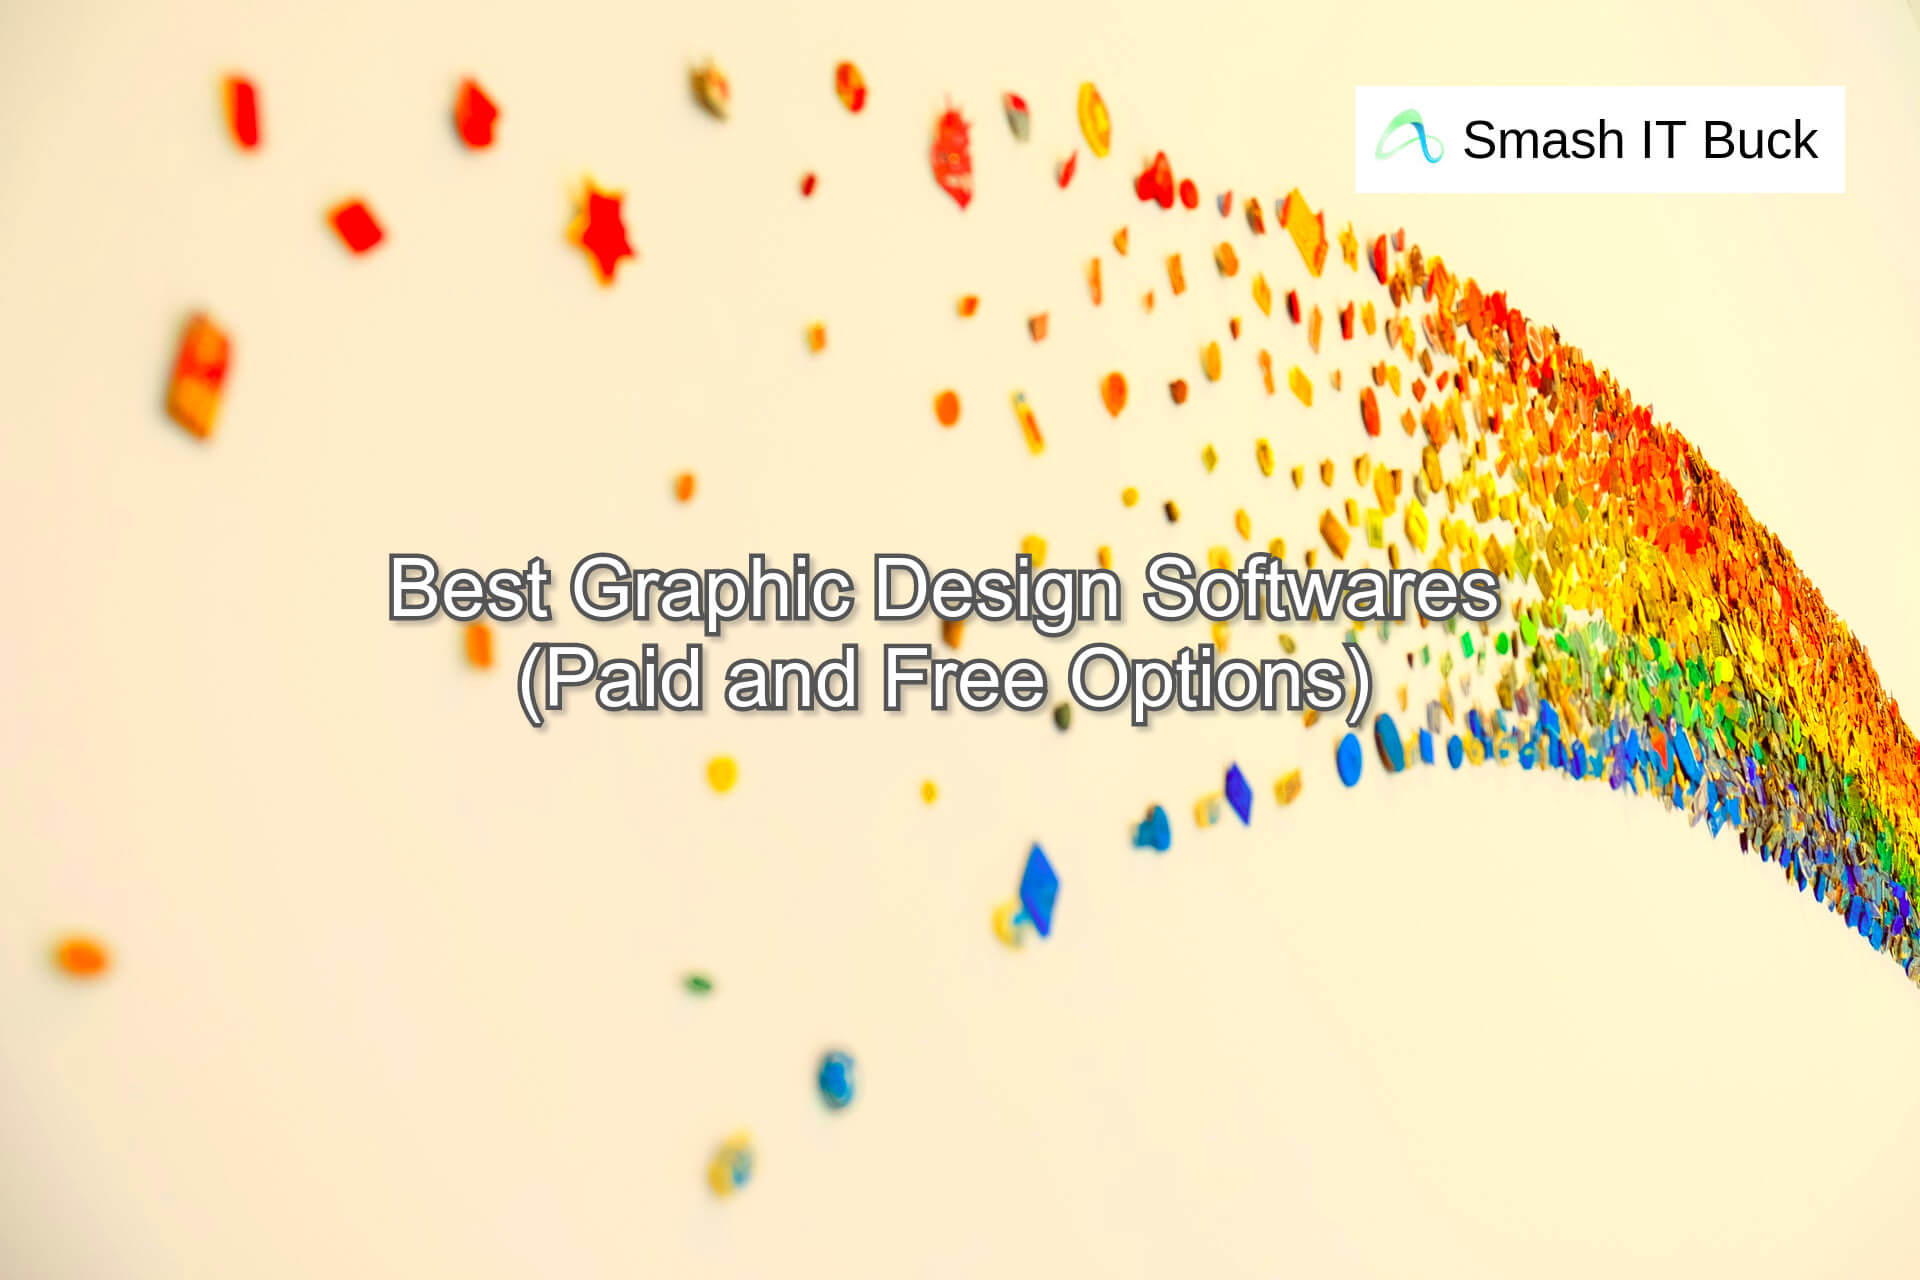 Best Graphic Design Software of 2021 (Ranked)